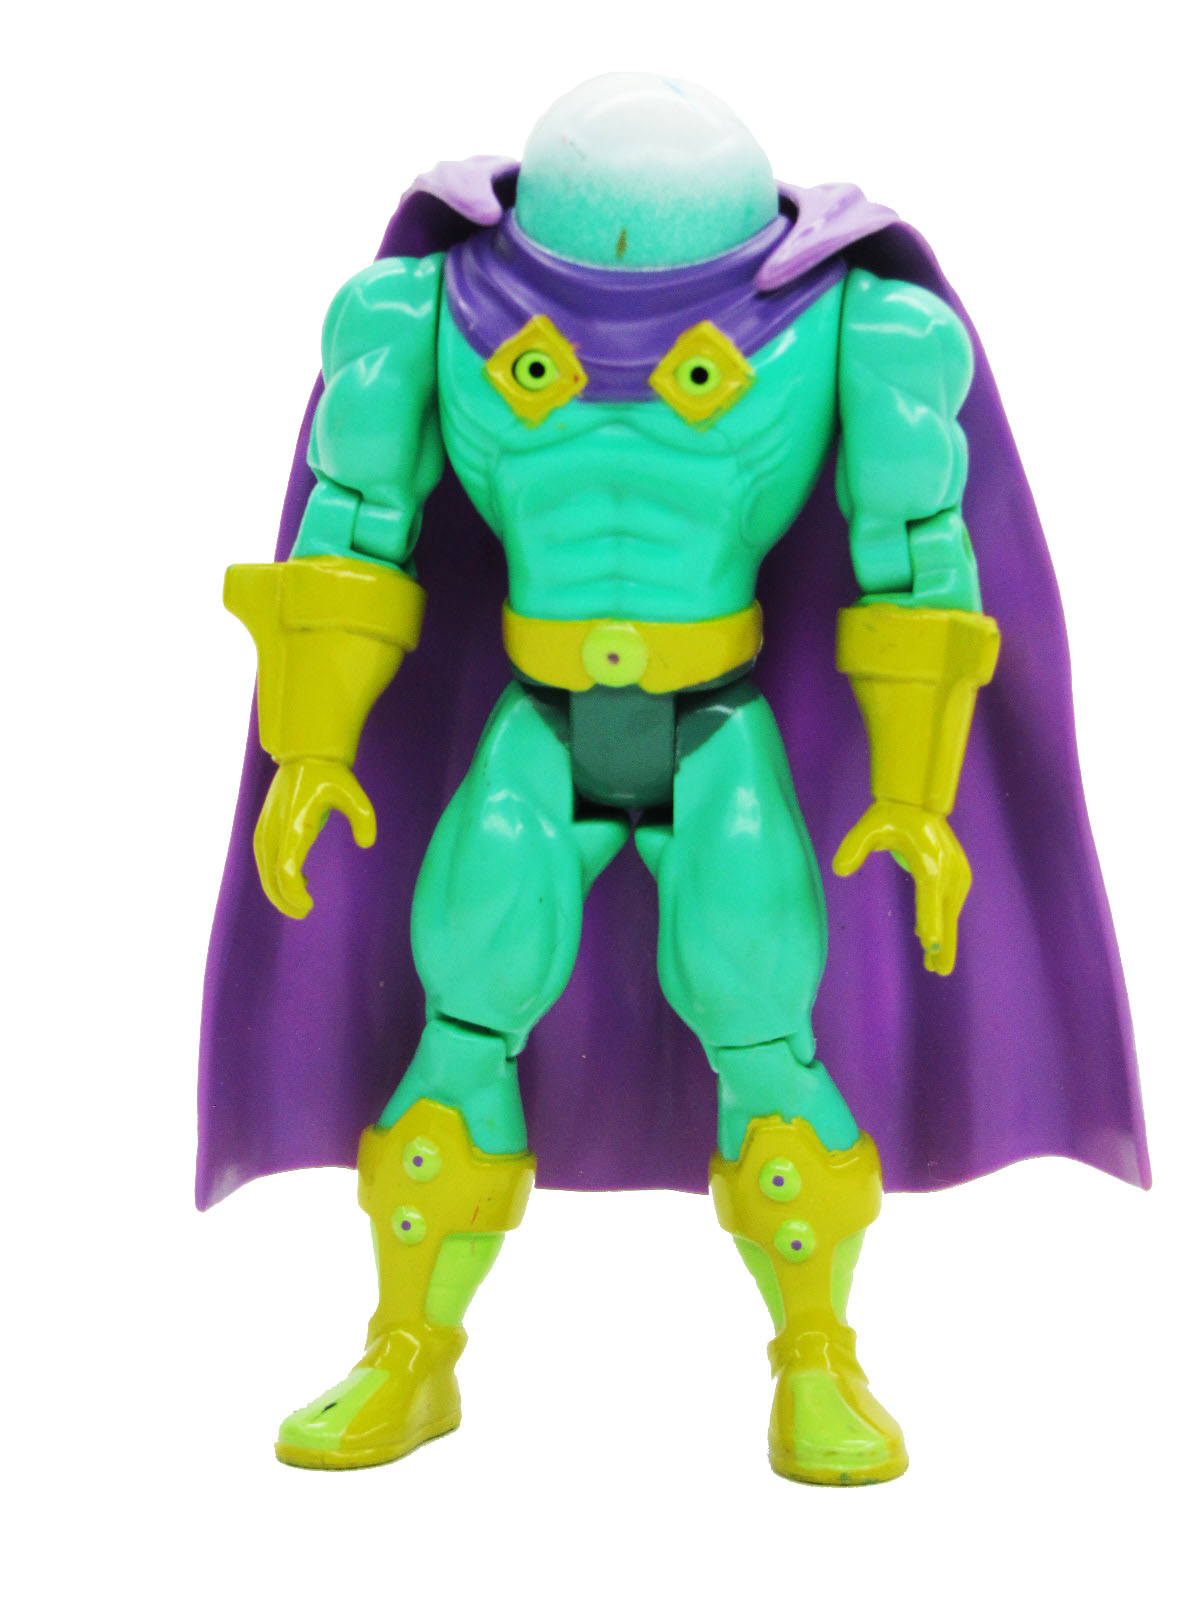 Spider-Man Animated Series Mysterio Complete